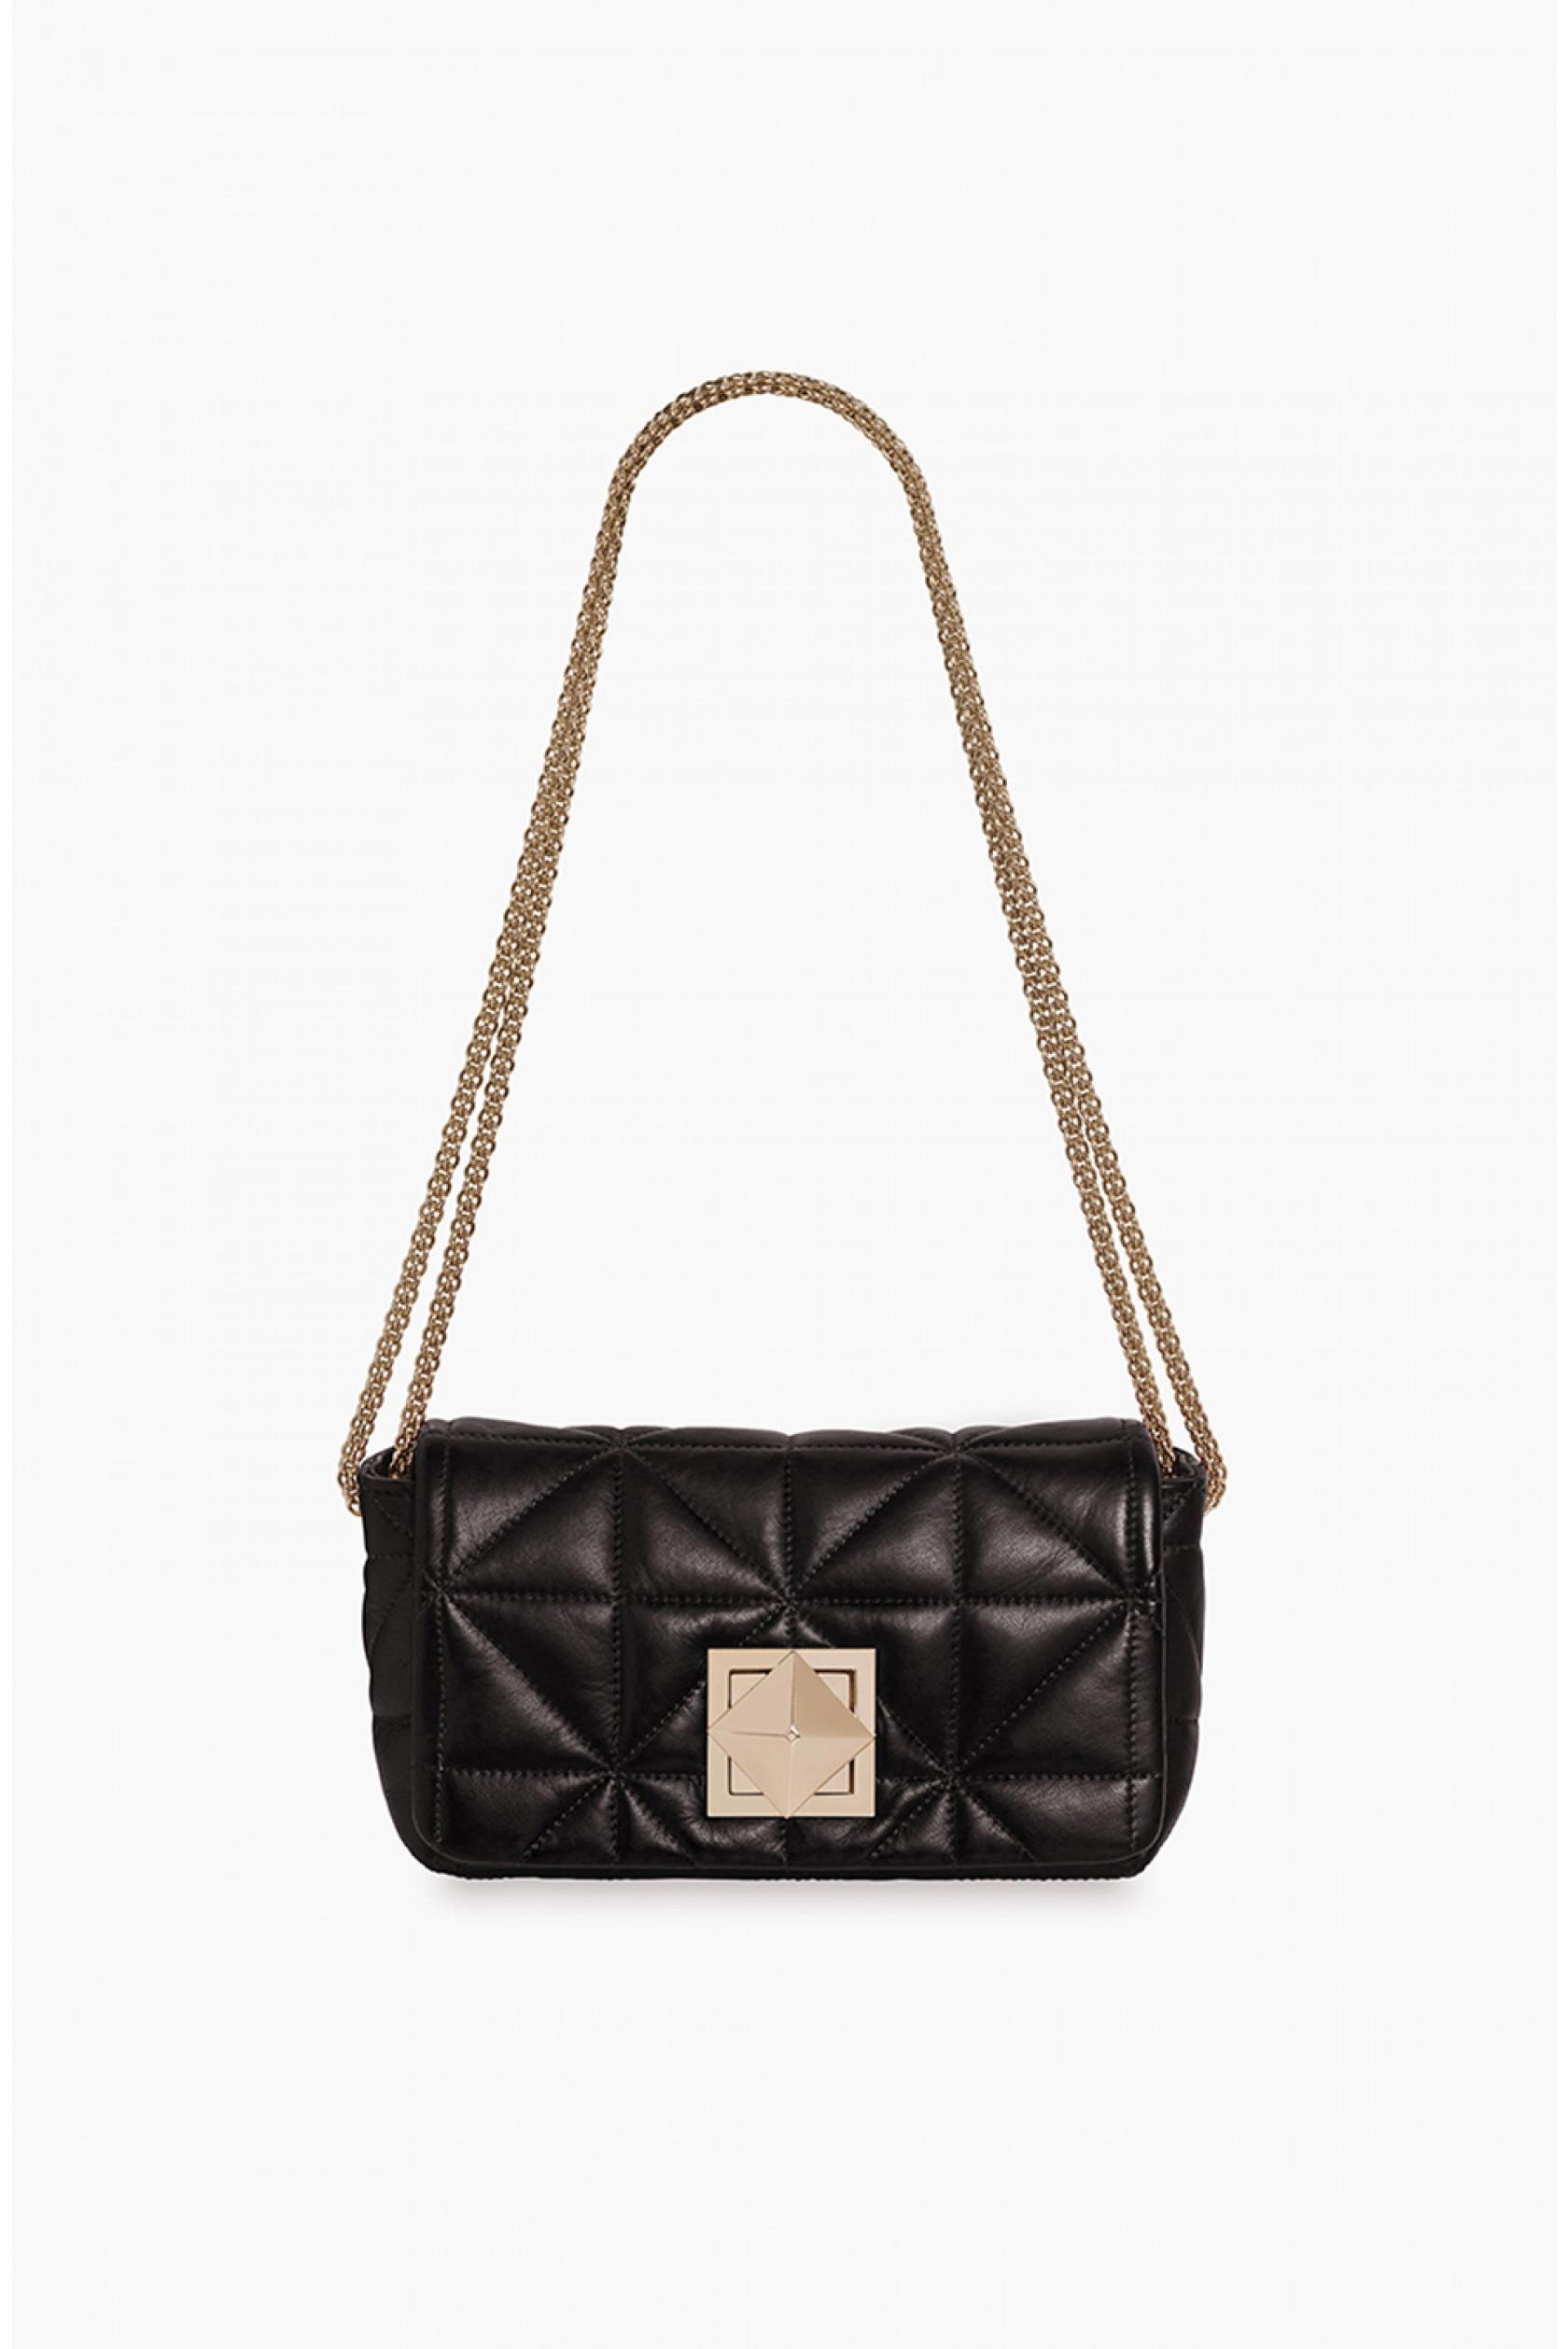 Le Copain Mini Bag in Gold Quilted Nappa Leather Sonia Rykiel vnVfn